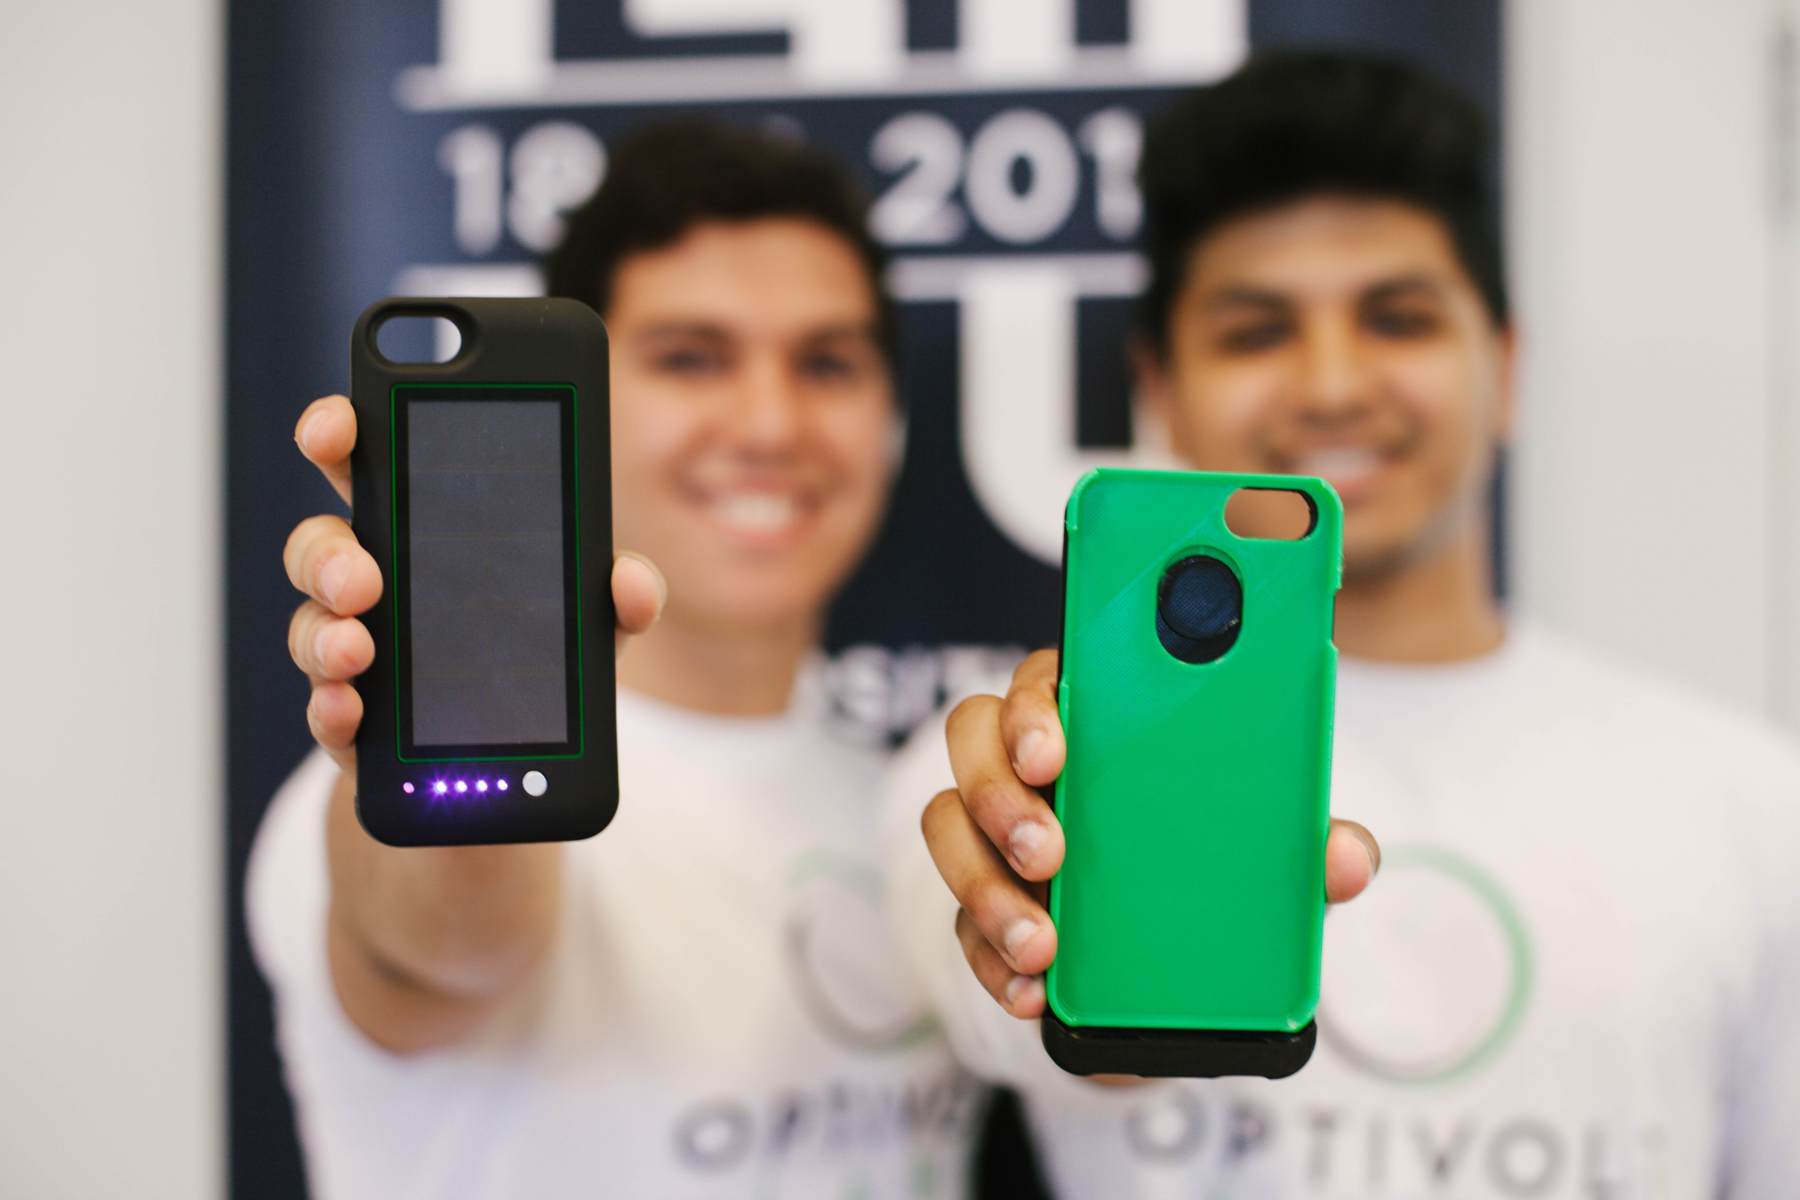 Couston and Kalyanpur hold prototypes of their phone cases. Photo by Emma Fleener.